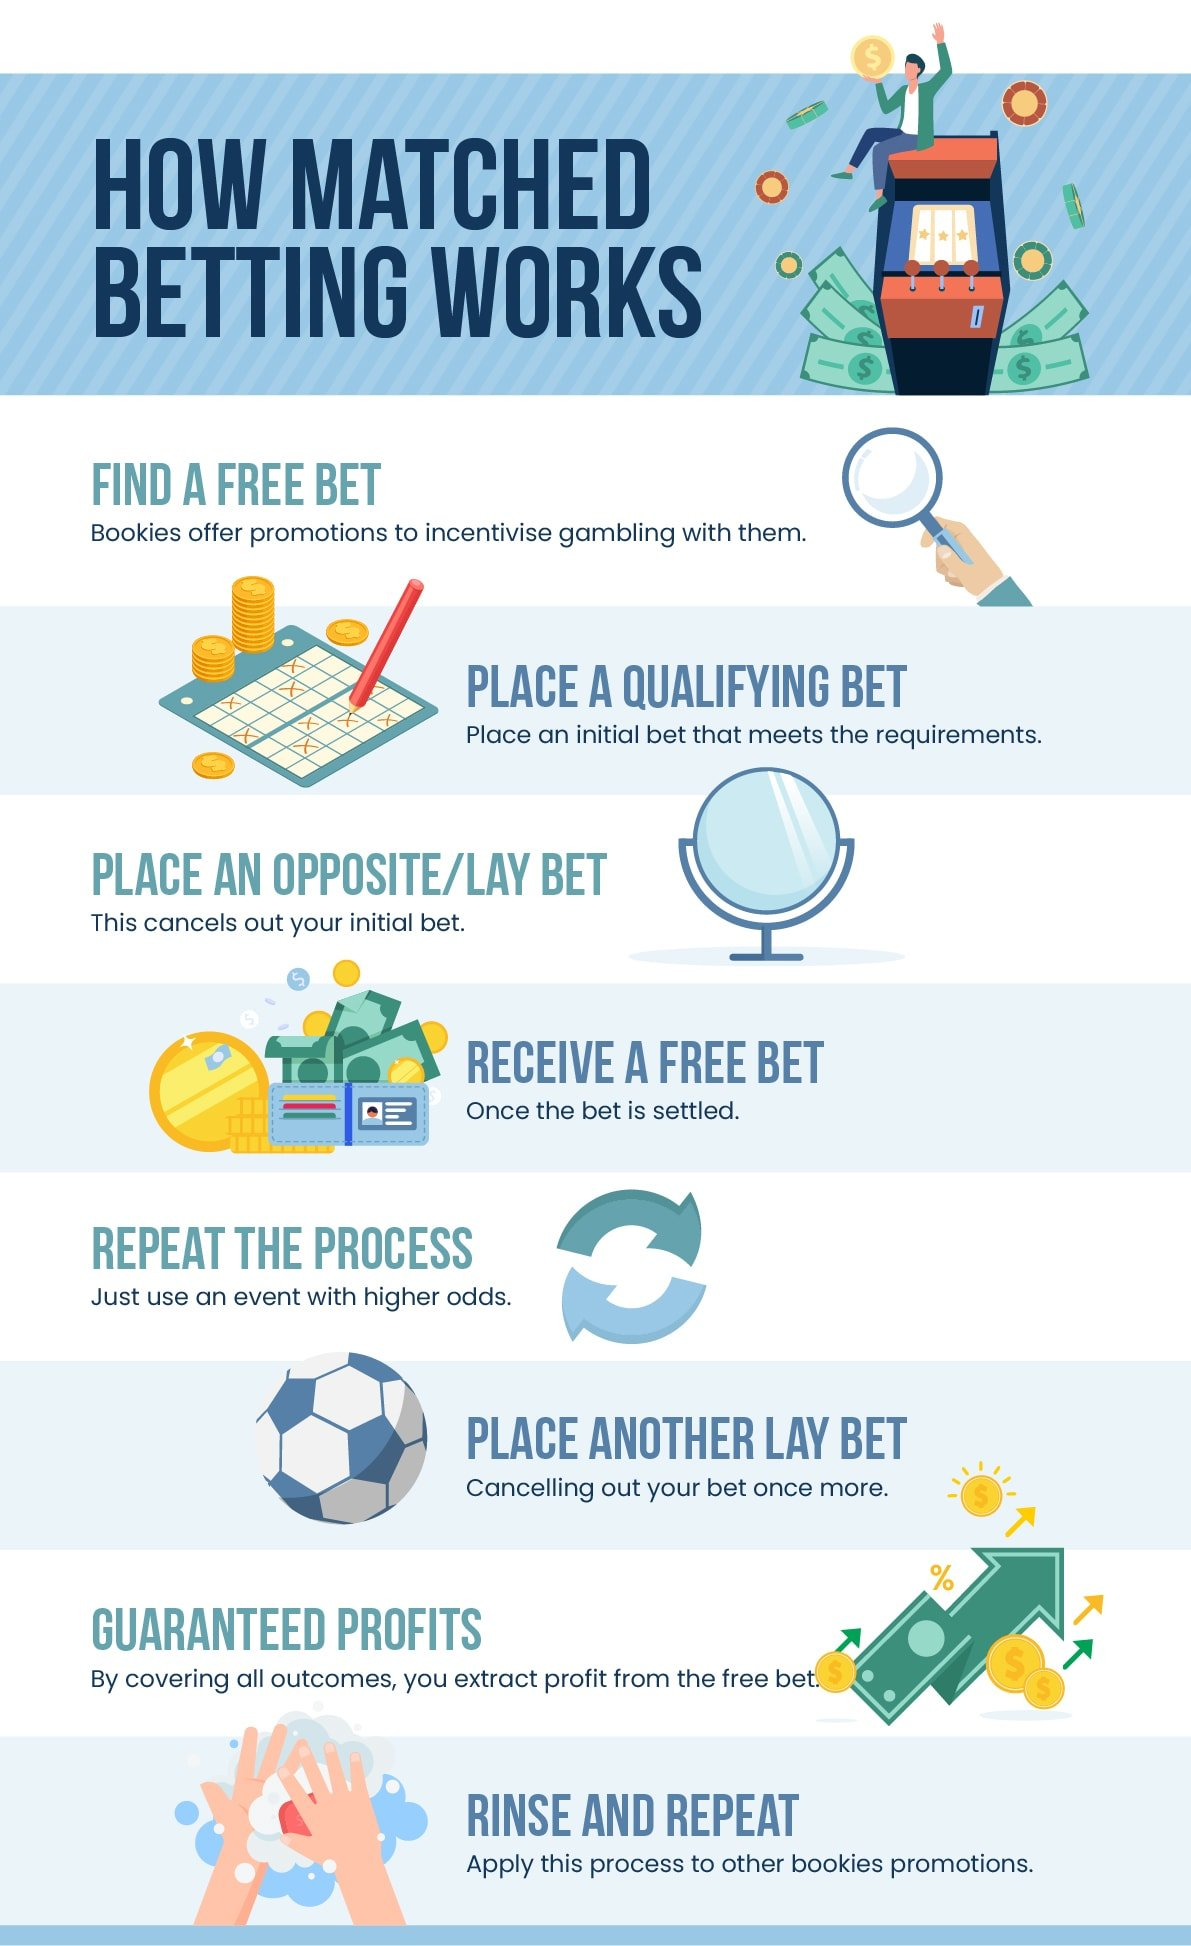 how matched betting works